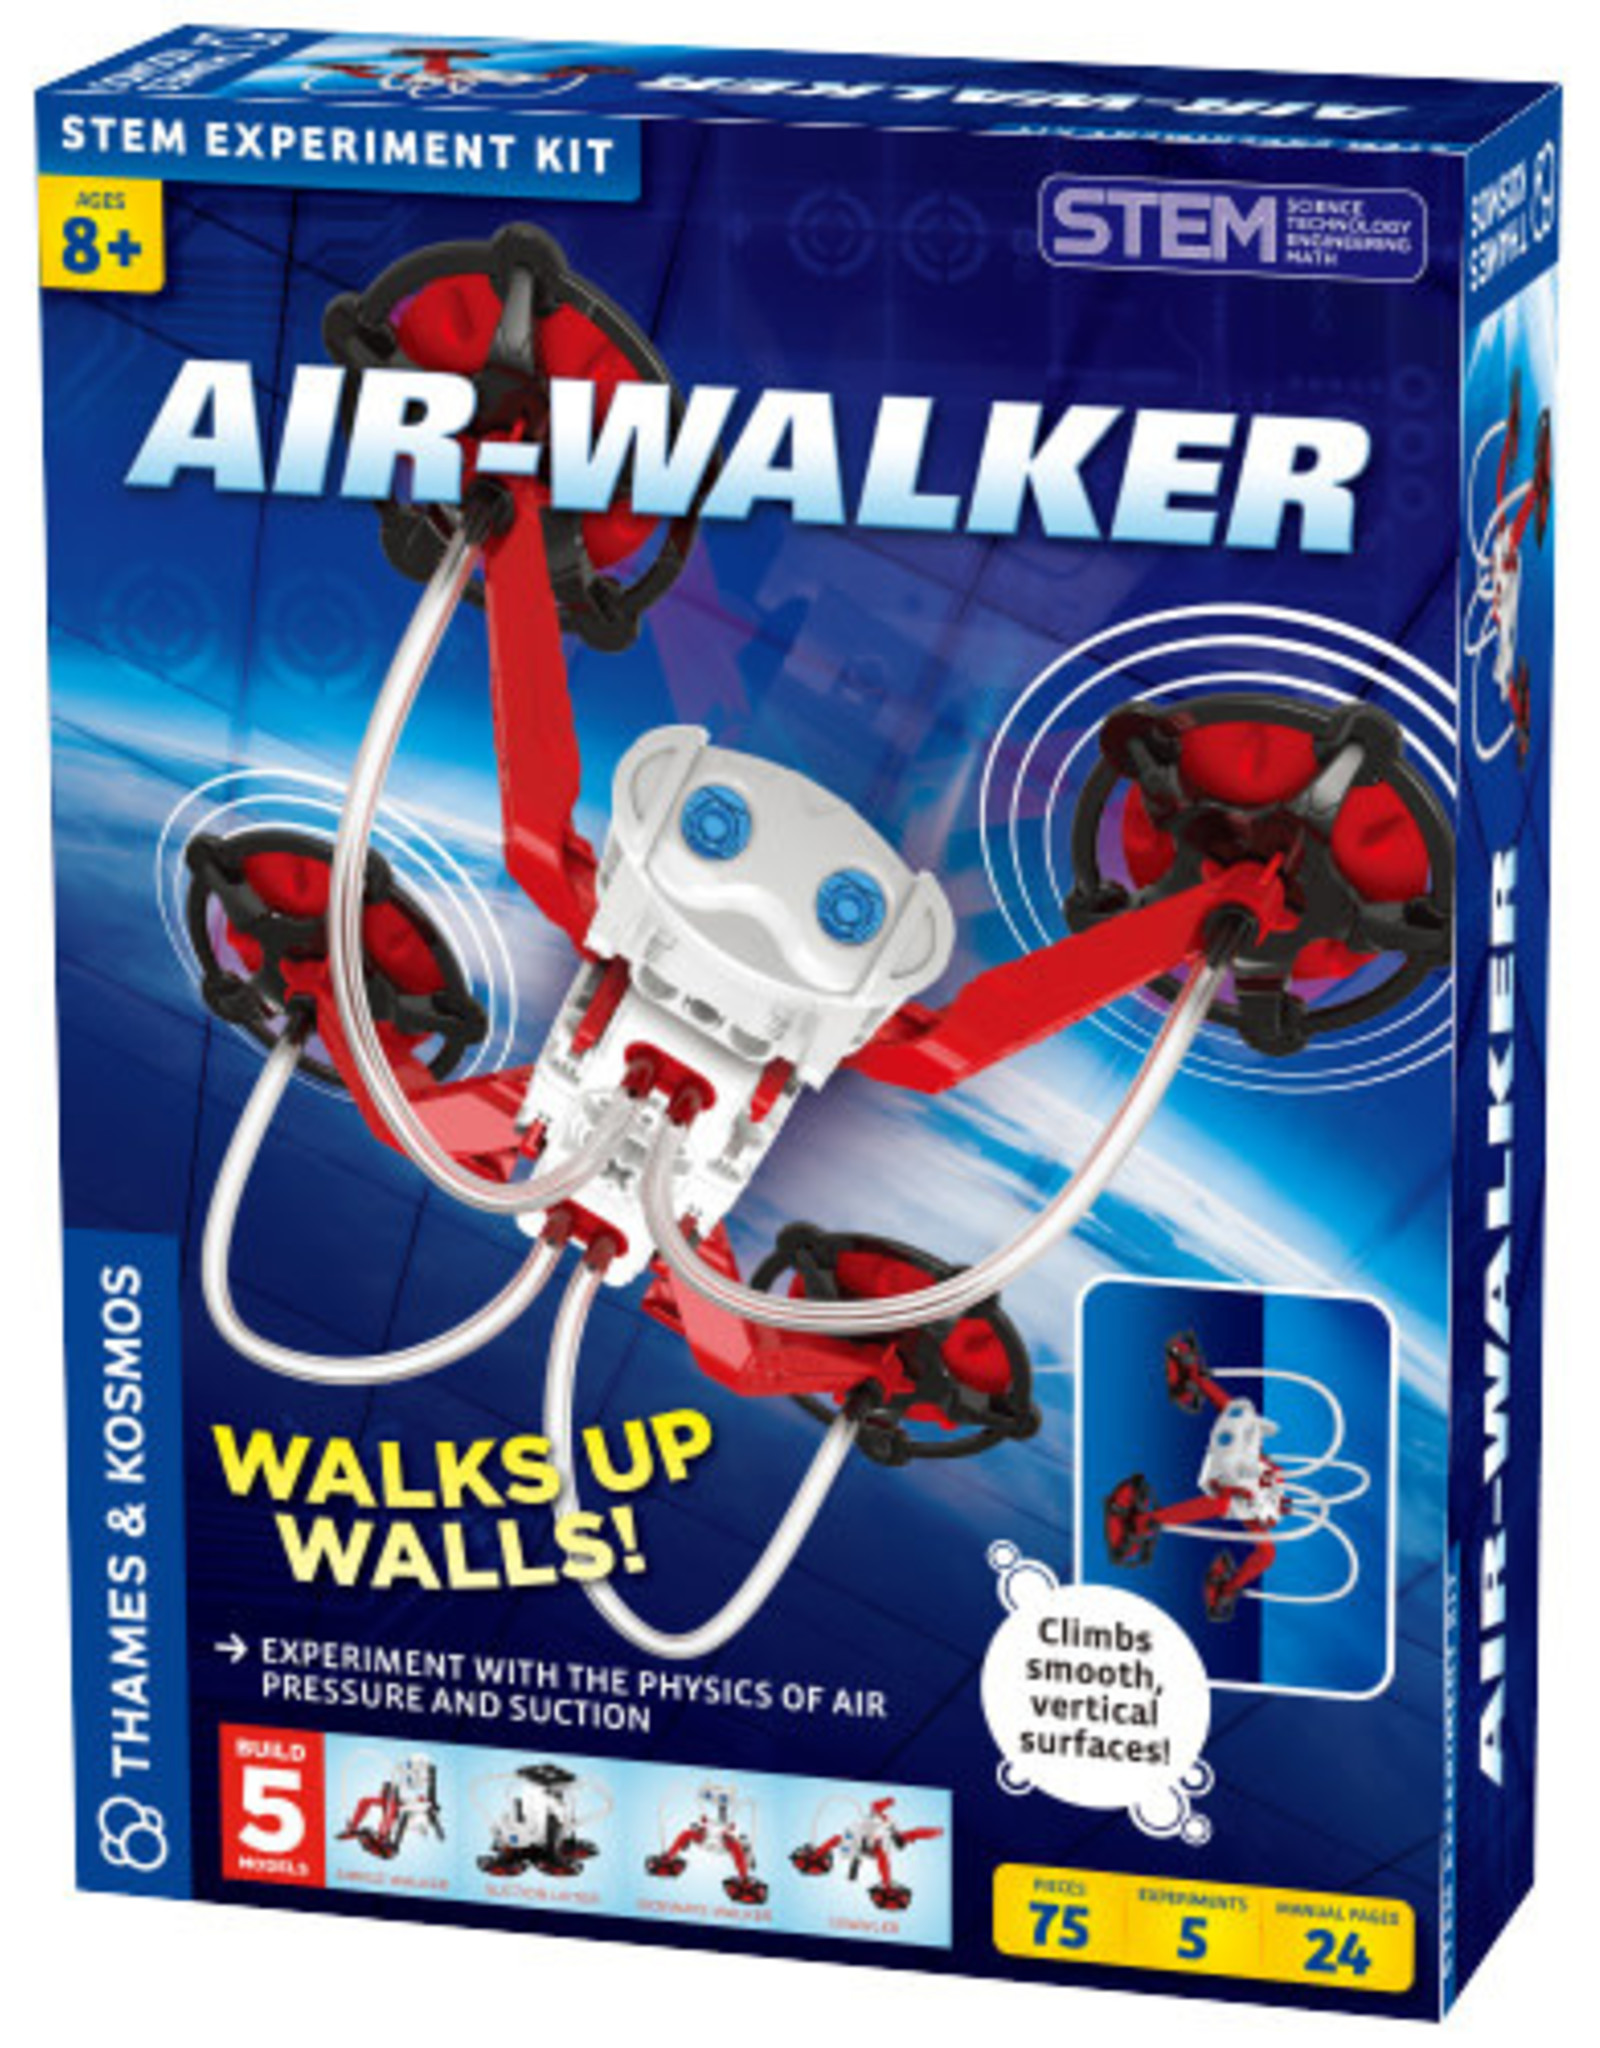 Signature Air-Walker